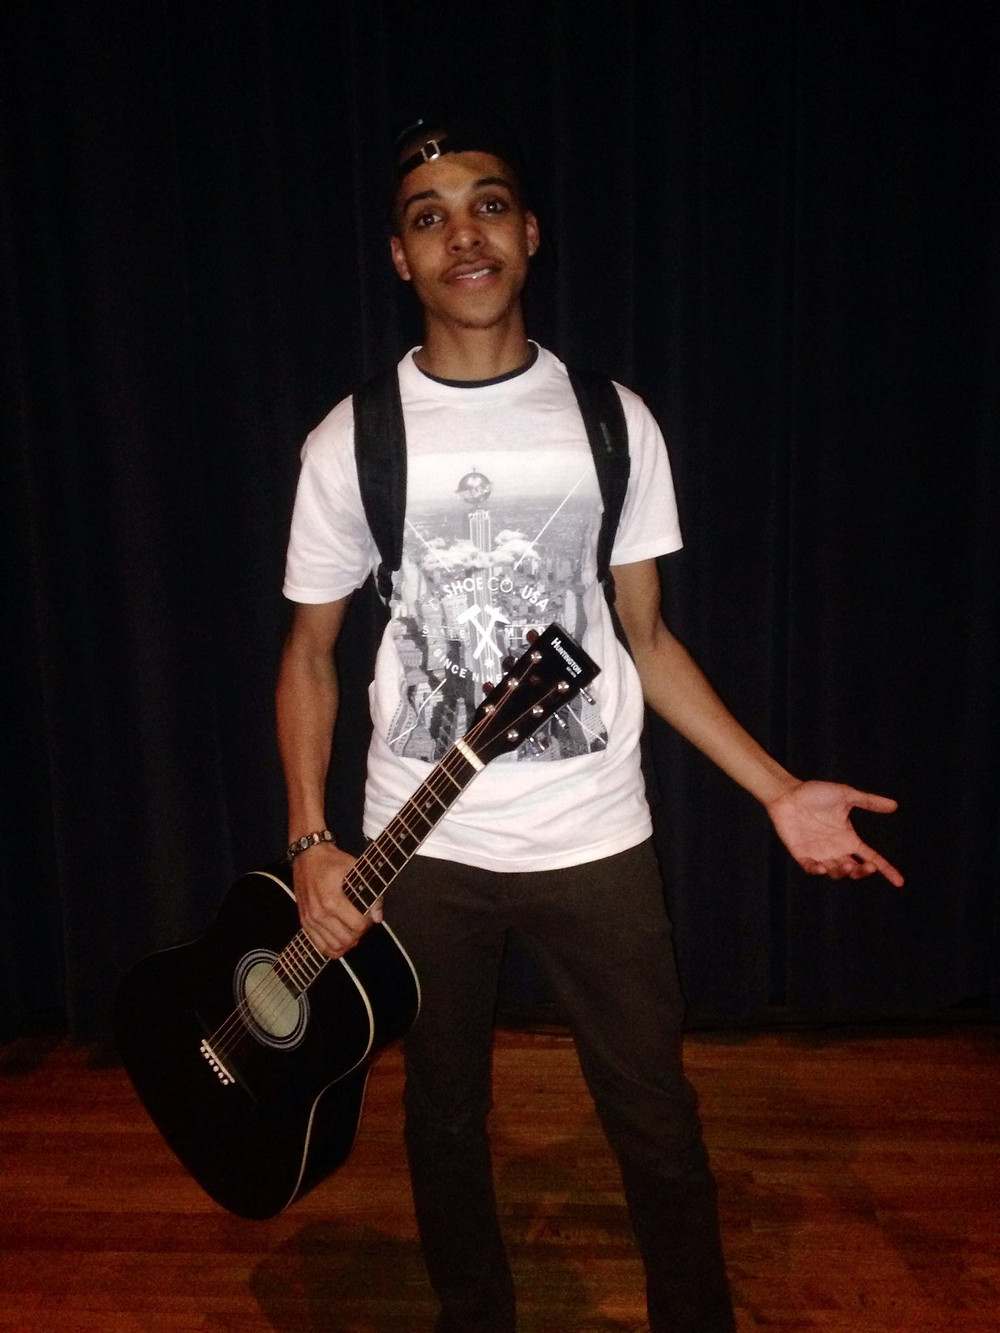 Denzel Fleming is pictured standing with a guitar in his right hand. His left hand is open toward the sky with his index finger and thumb relaxed in a nonchalant manner. He is wearing a white graphic tee, brown pants, a black backpack and hat.